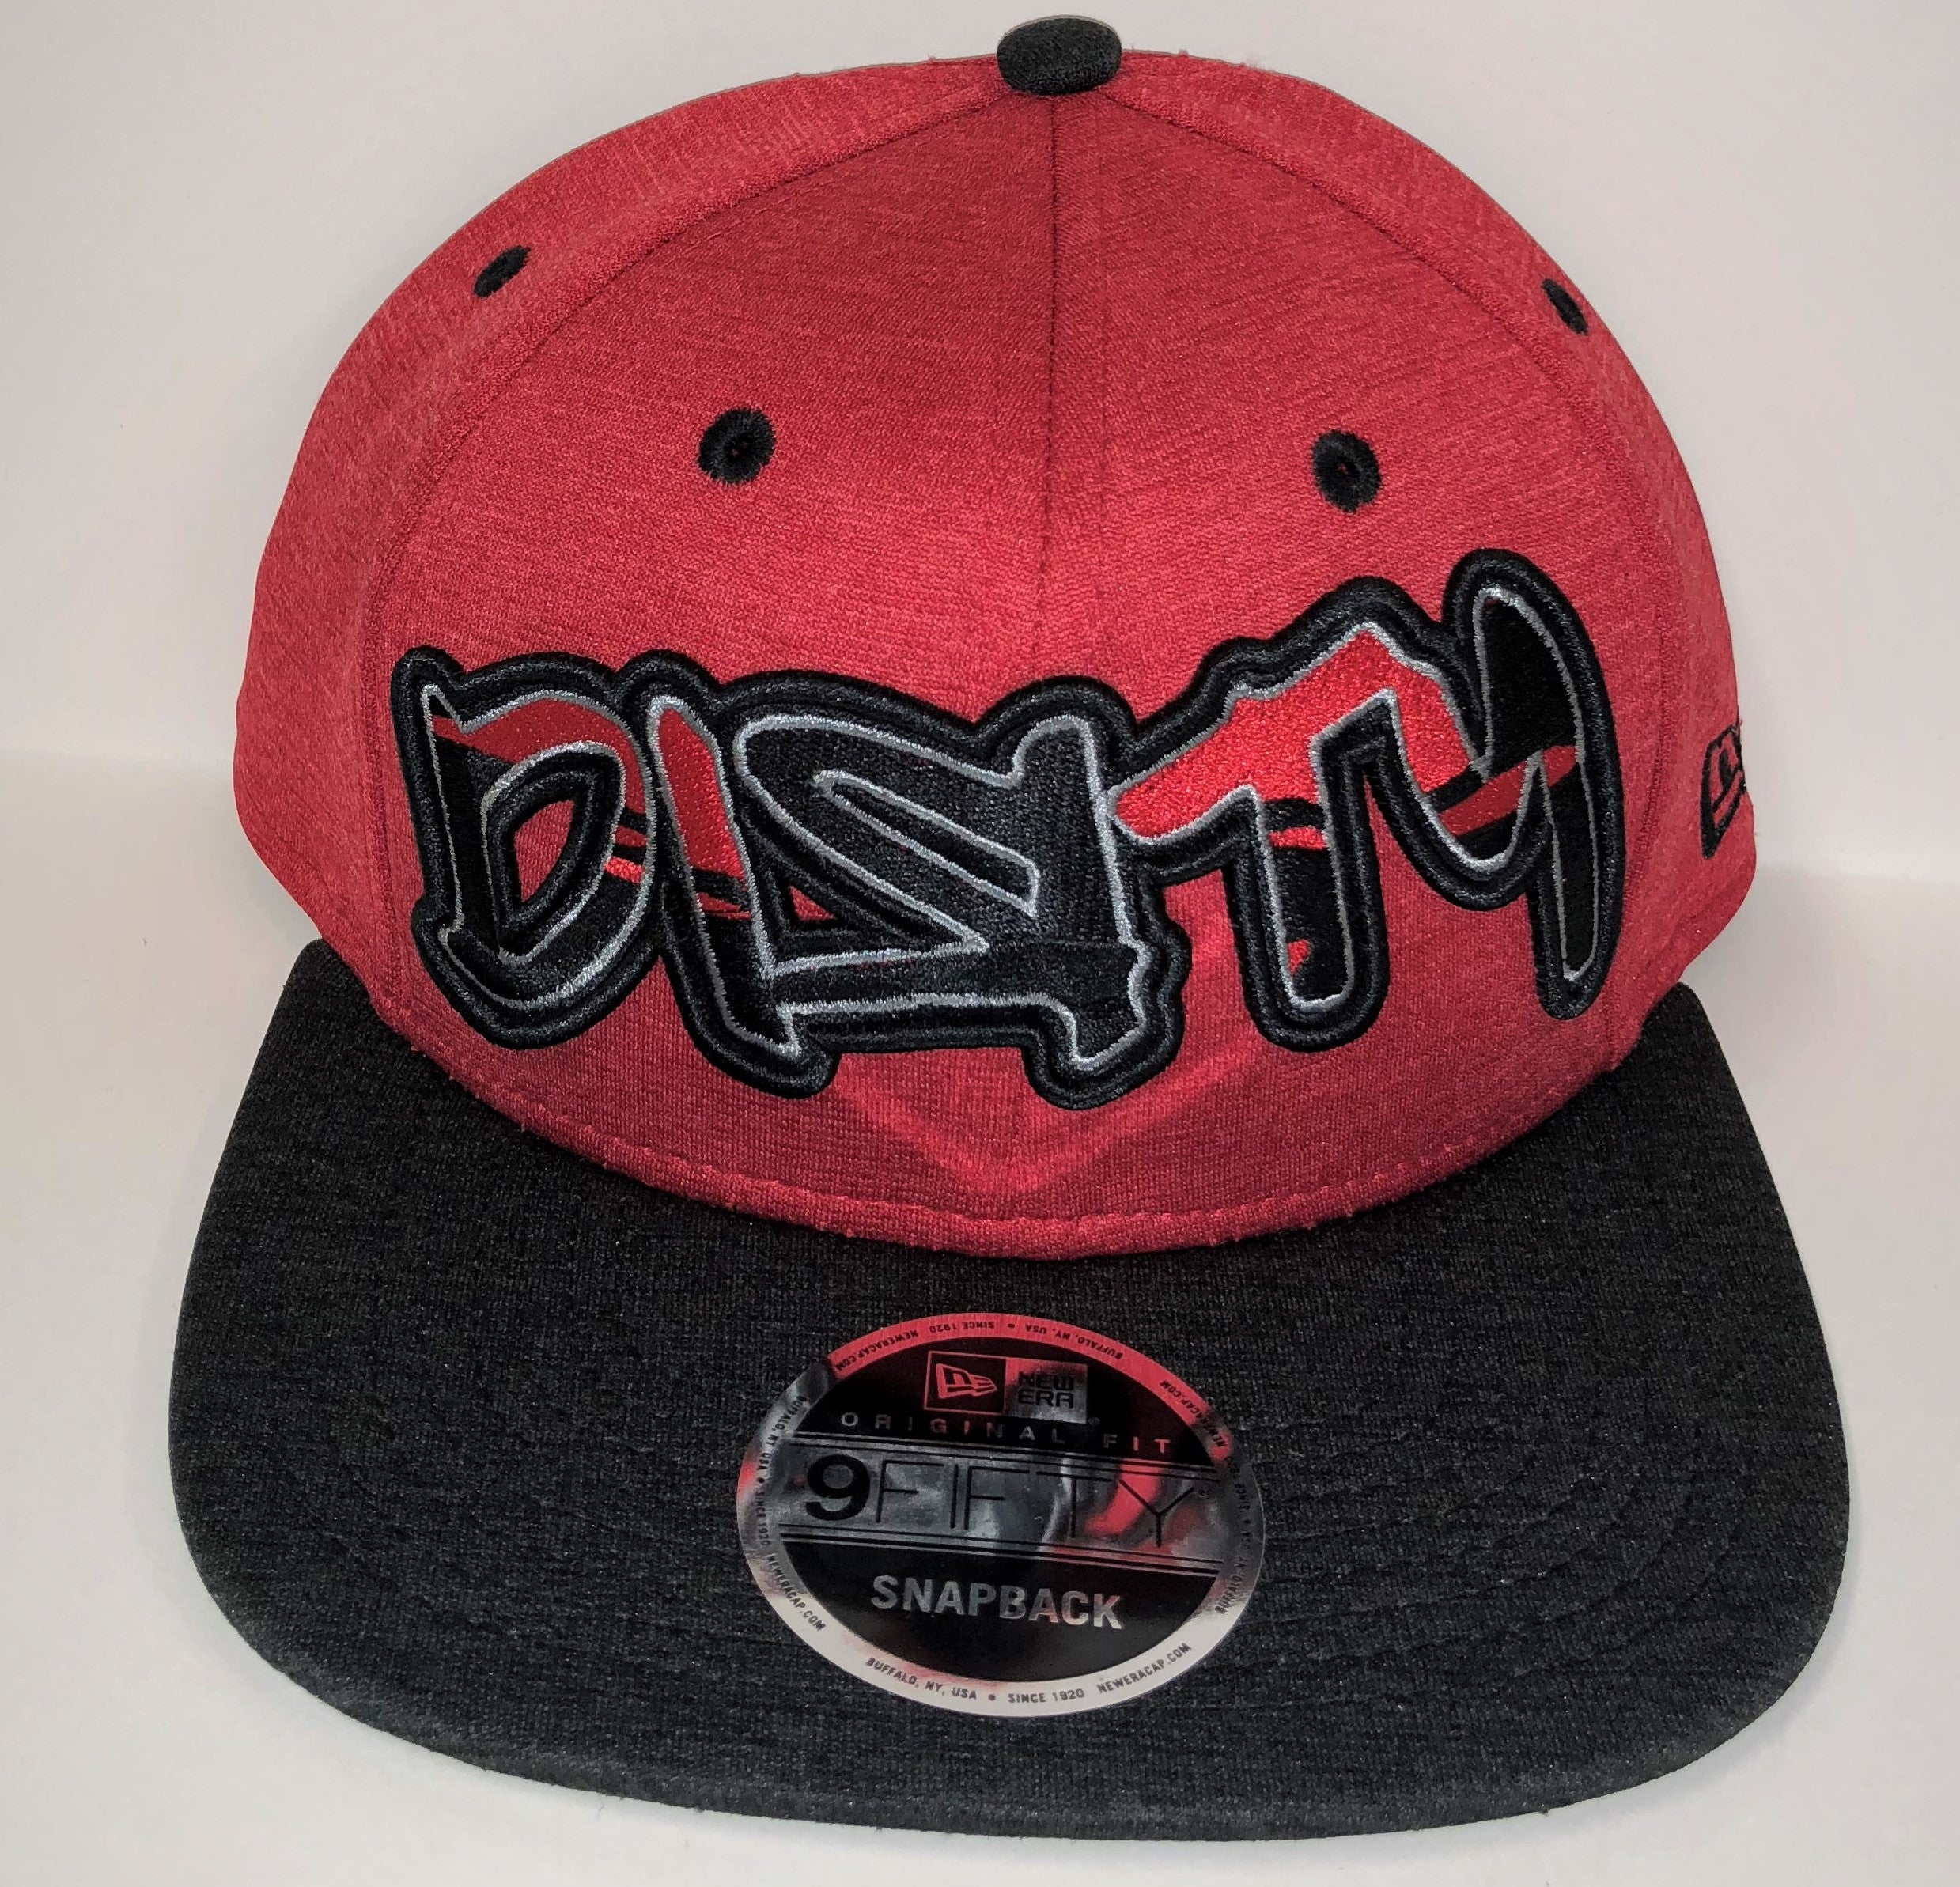 d9ded672e New Era 9FIFTY Snap-Back Hat - Red & Black - Red, Black & Gray Graffiti  DIЯTY Logo #286